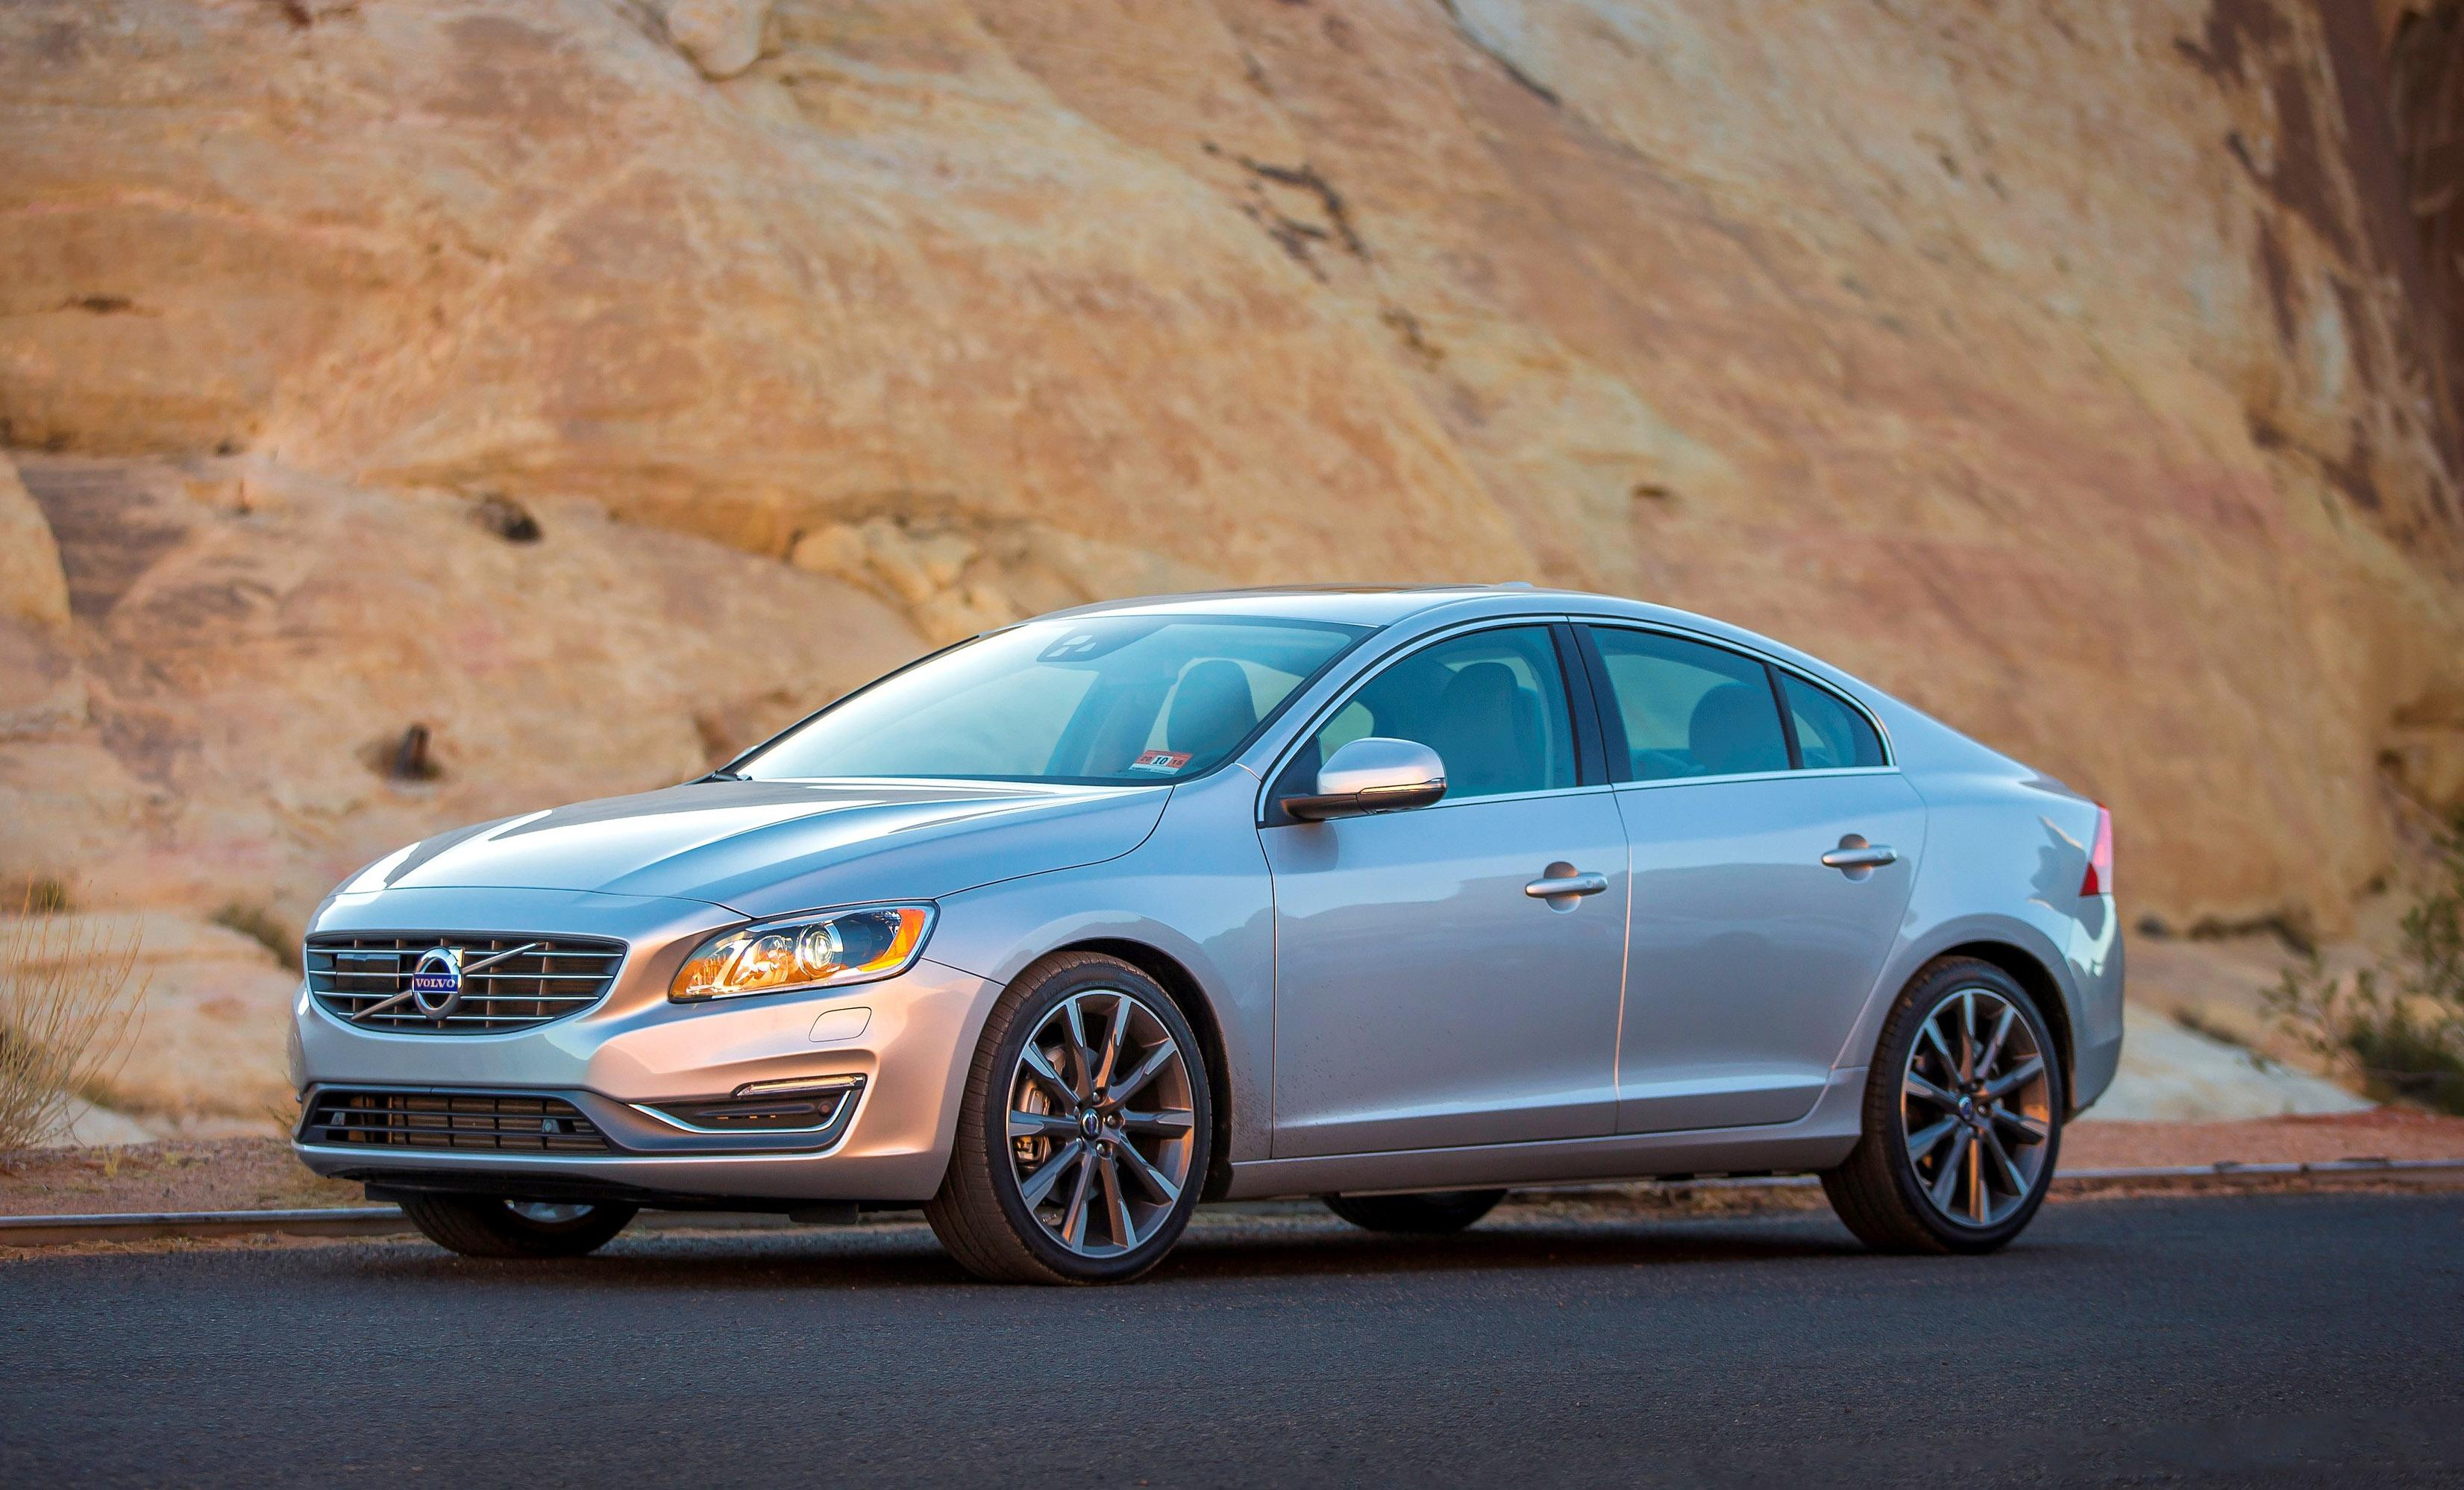 Volvo's entry car, S60, gets more power, plus fuel economy